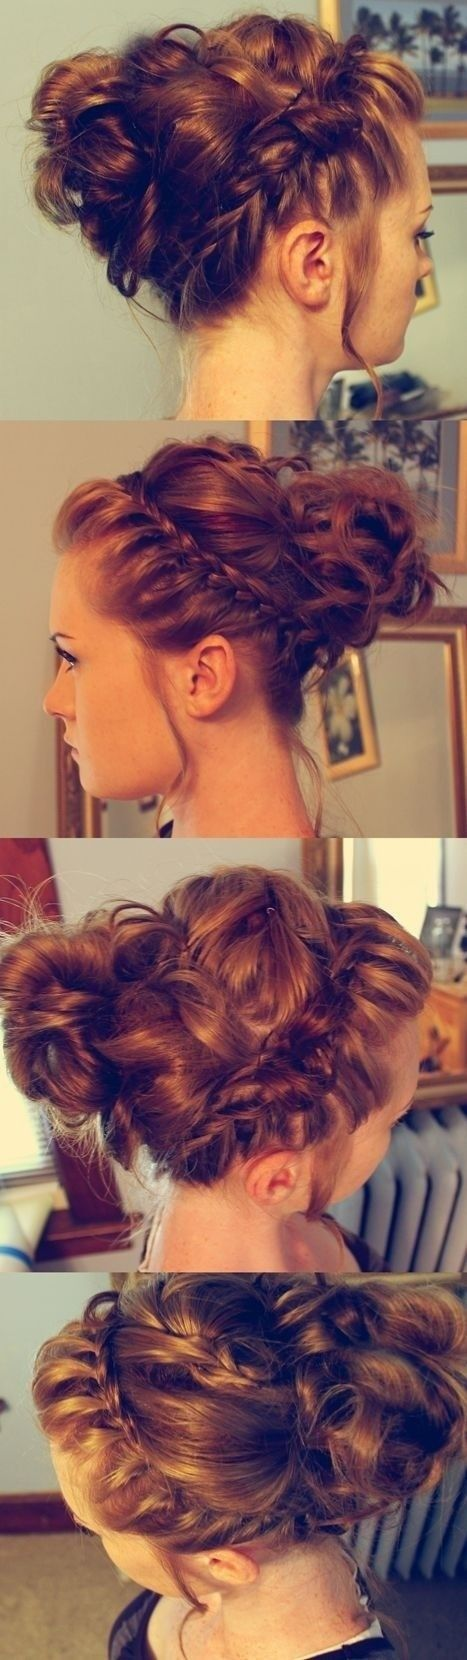 8 Fantastic New Dance Hairstyles: Long Hair Styles for Prom